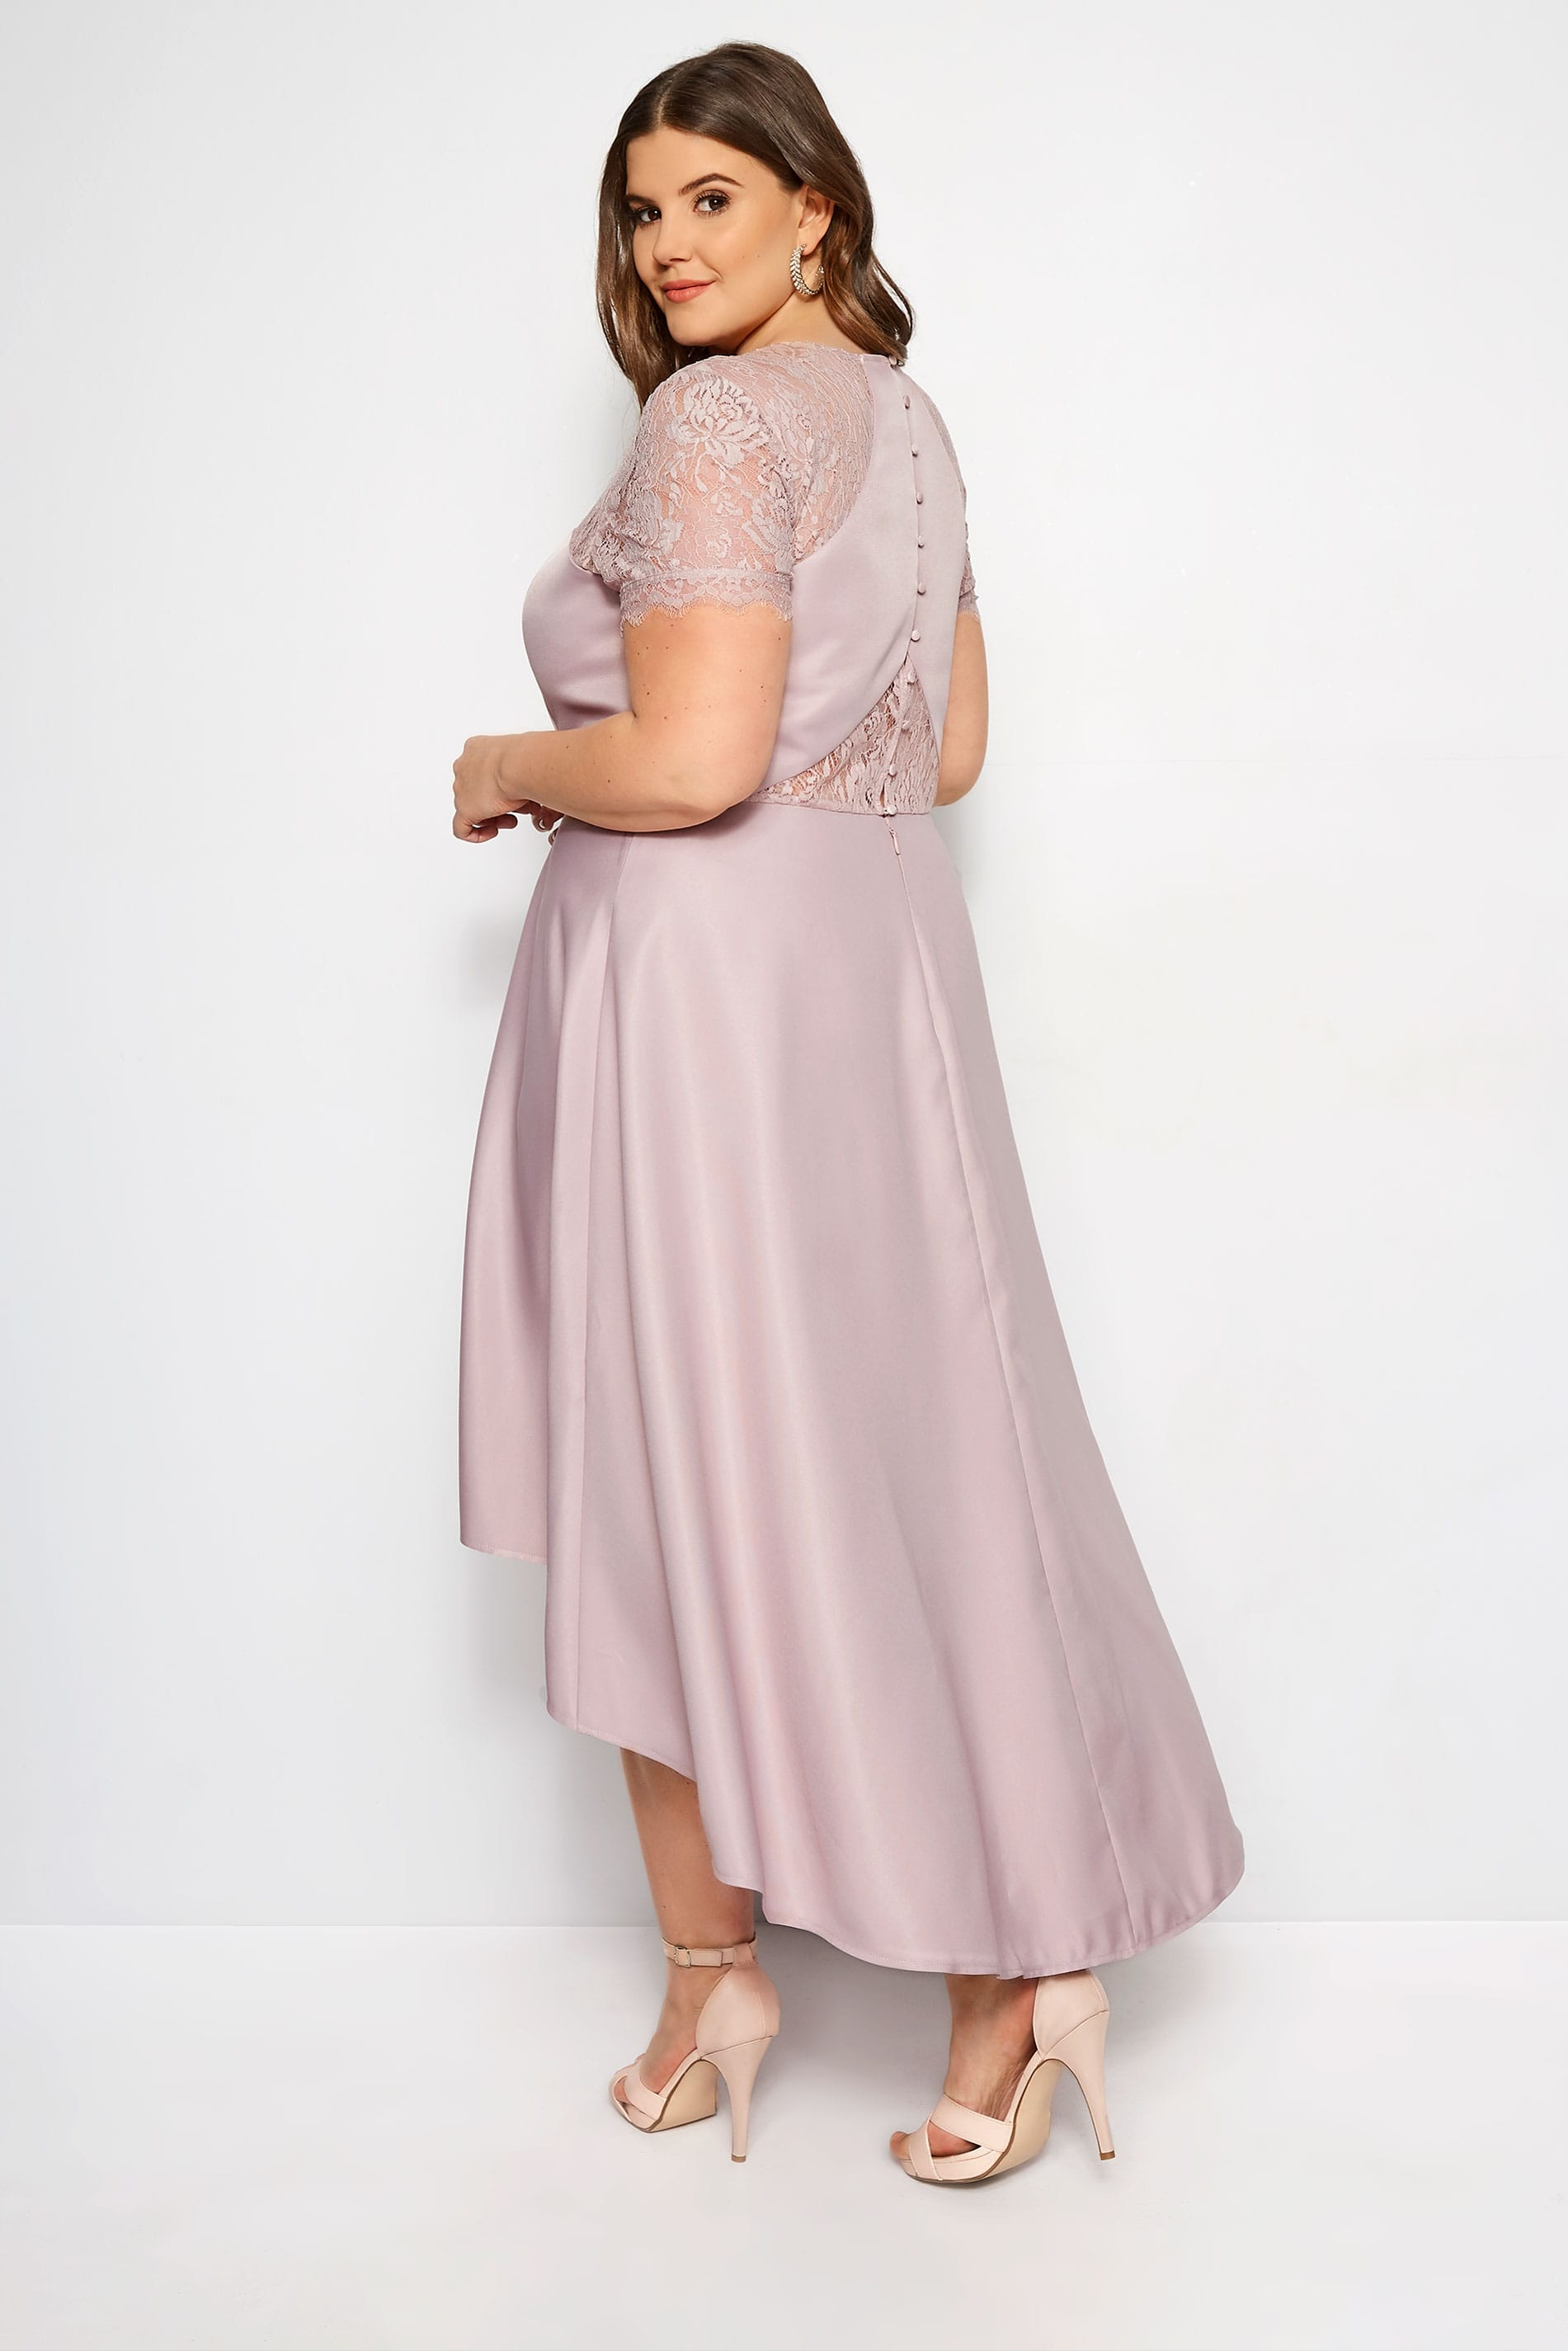 Wedding Guest Dress for plus-size women